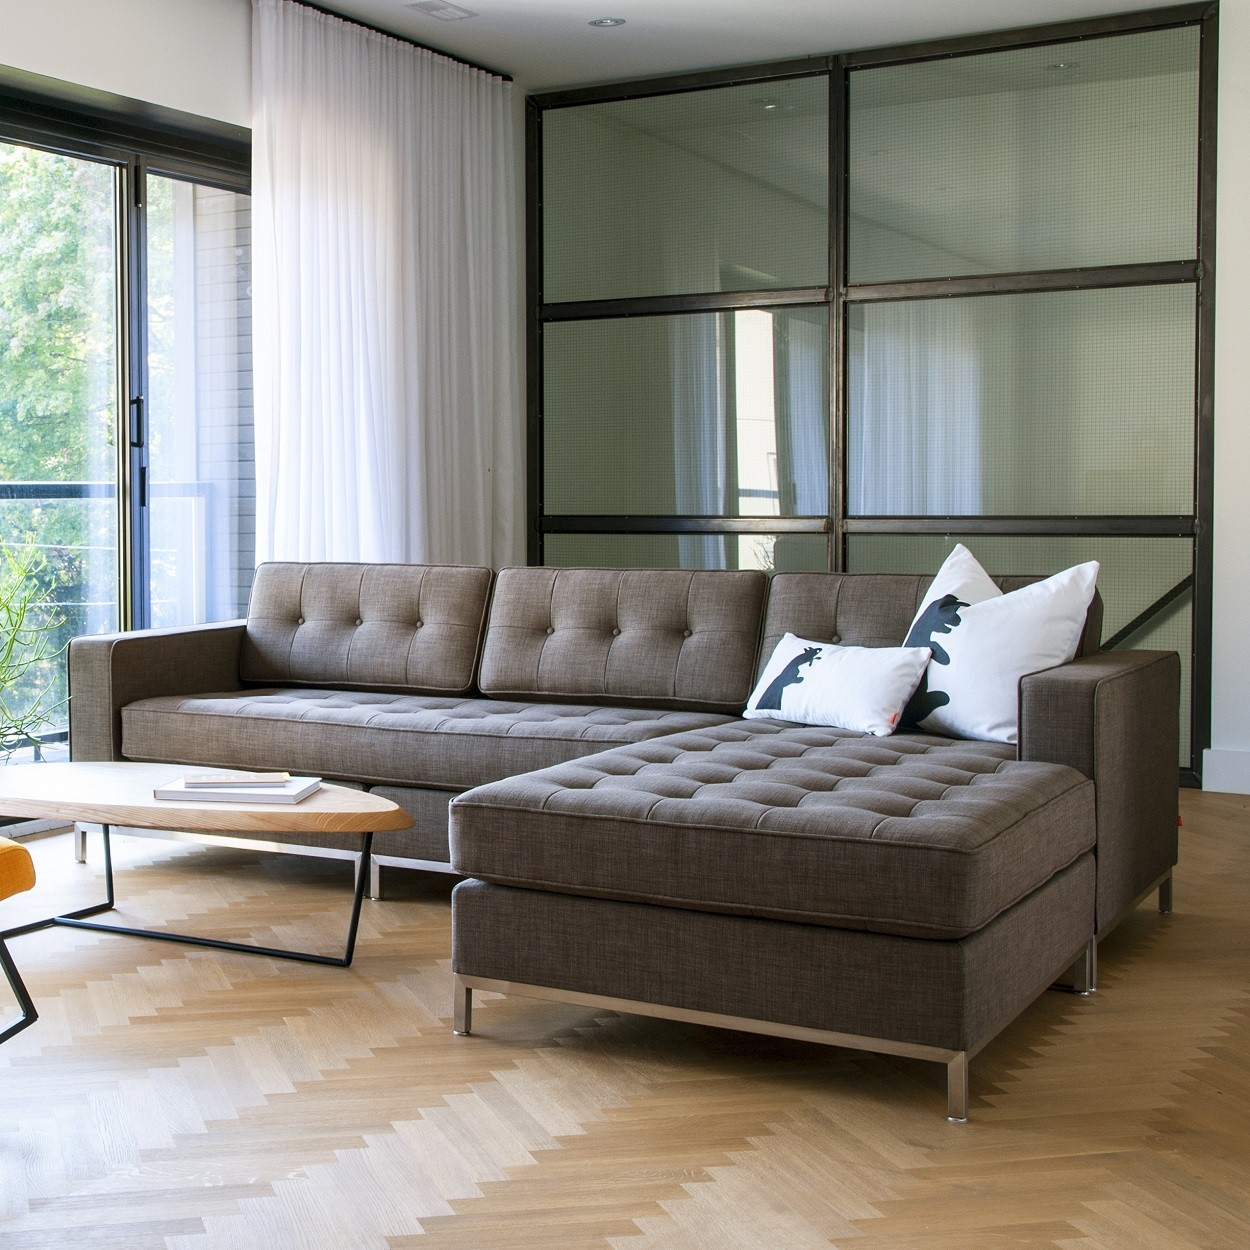 The Best Apartment Sectional Sofas Solving Function and Style Issues  HomesFeed